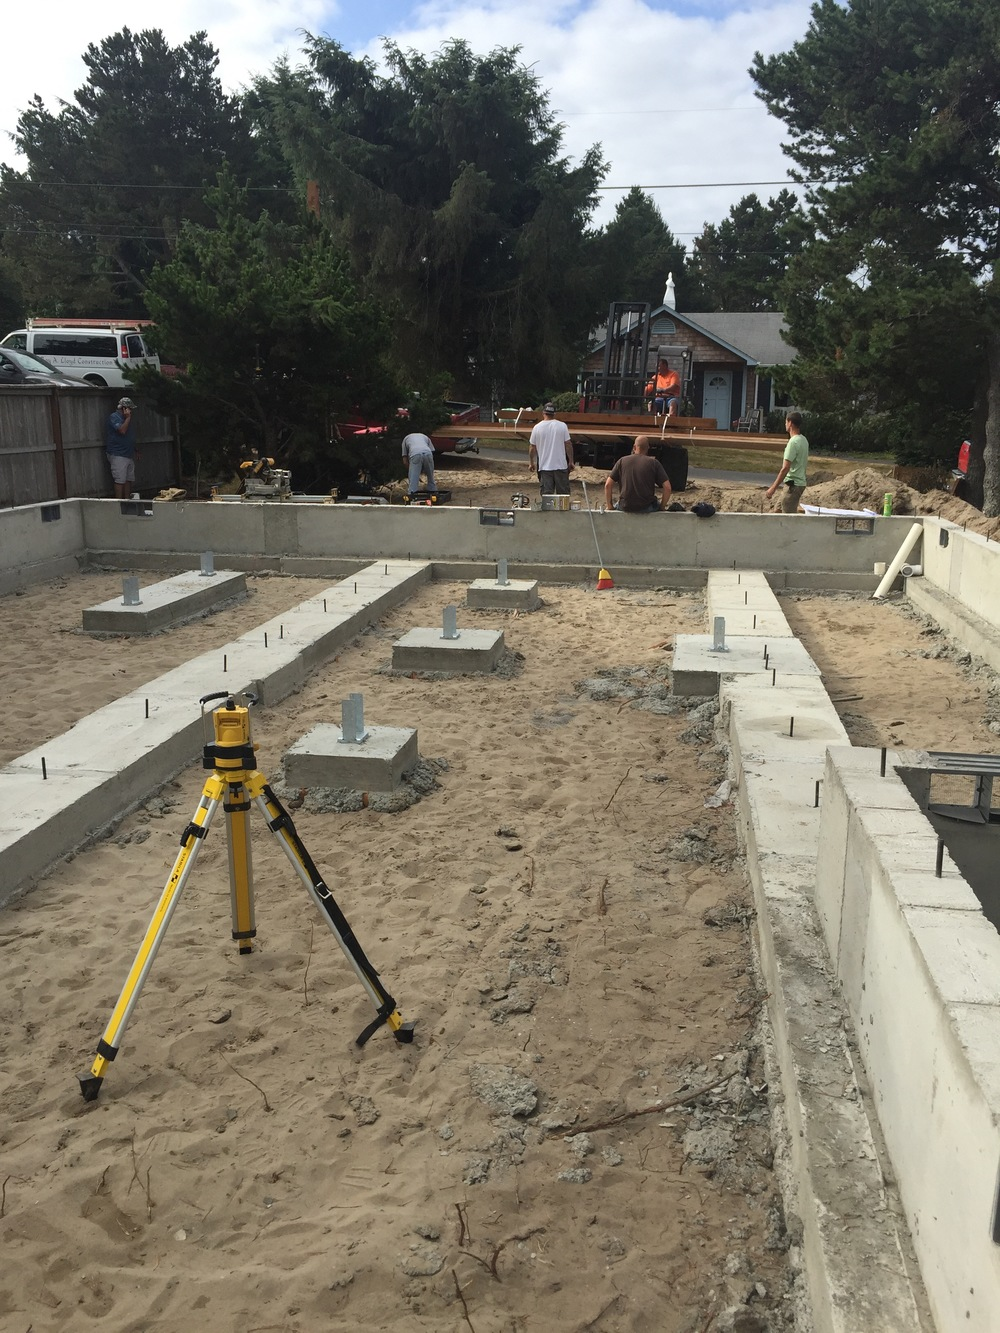 Laser level in foreground